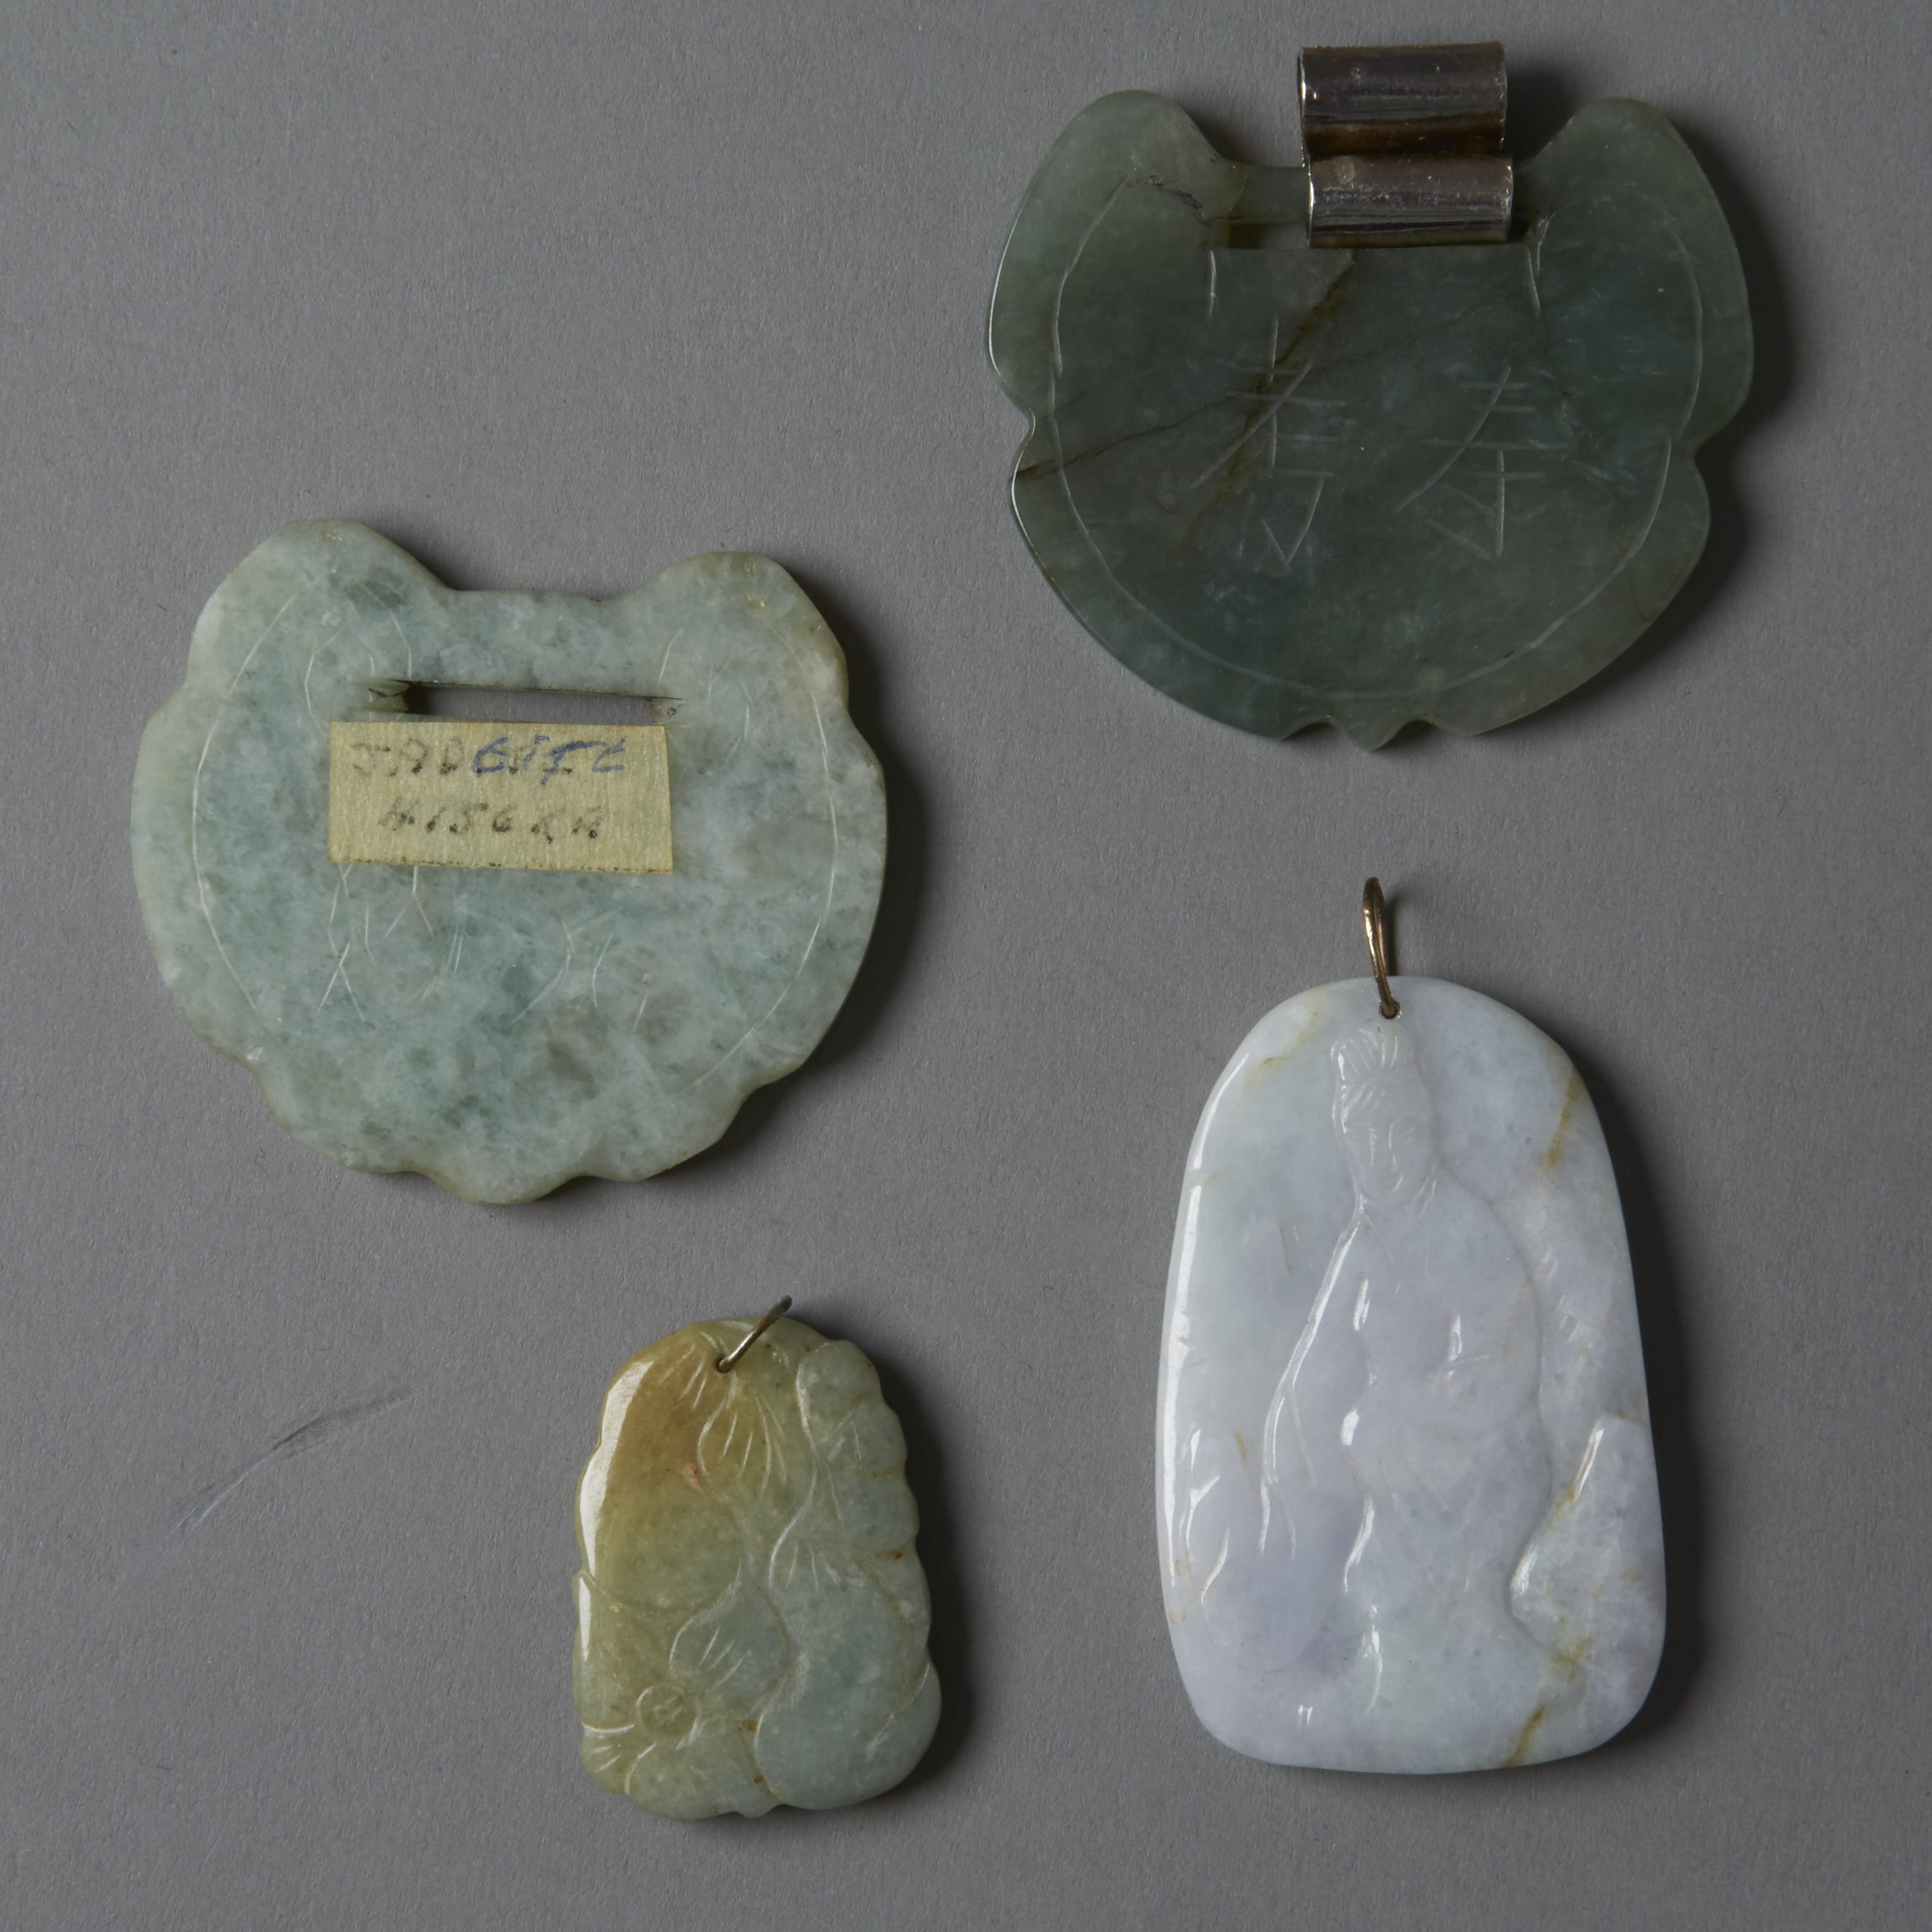 Lot 018: Group of 4: 20th century Chinese white and green carved Jade Pendants